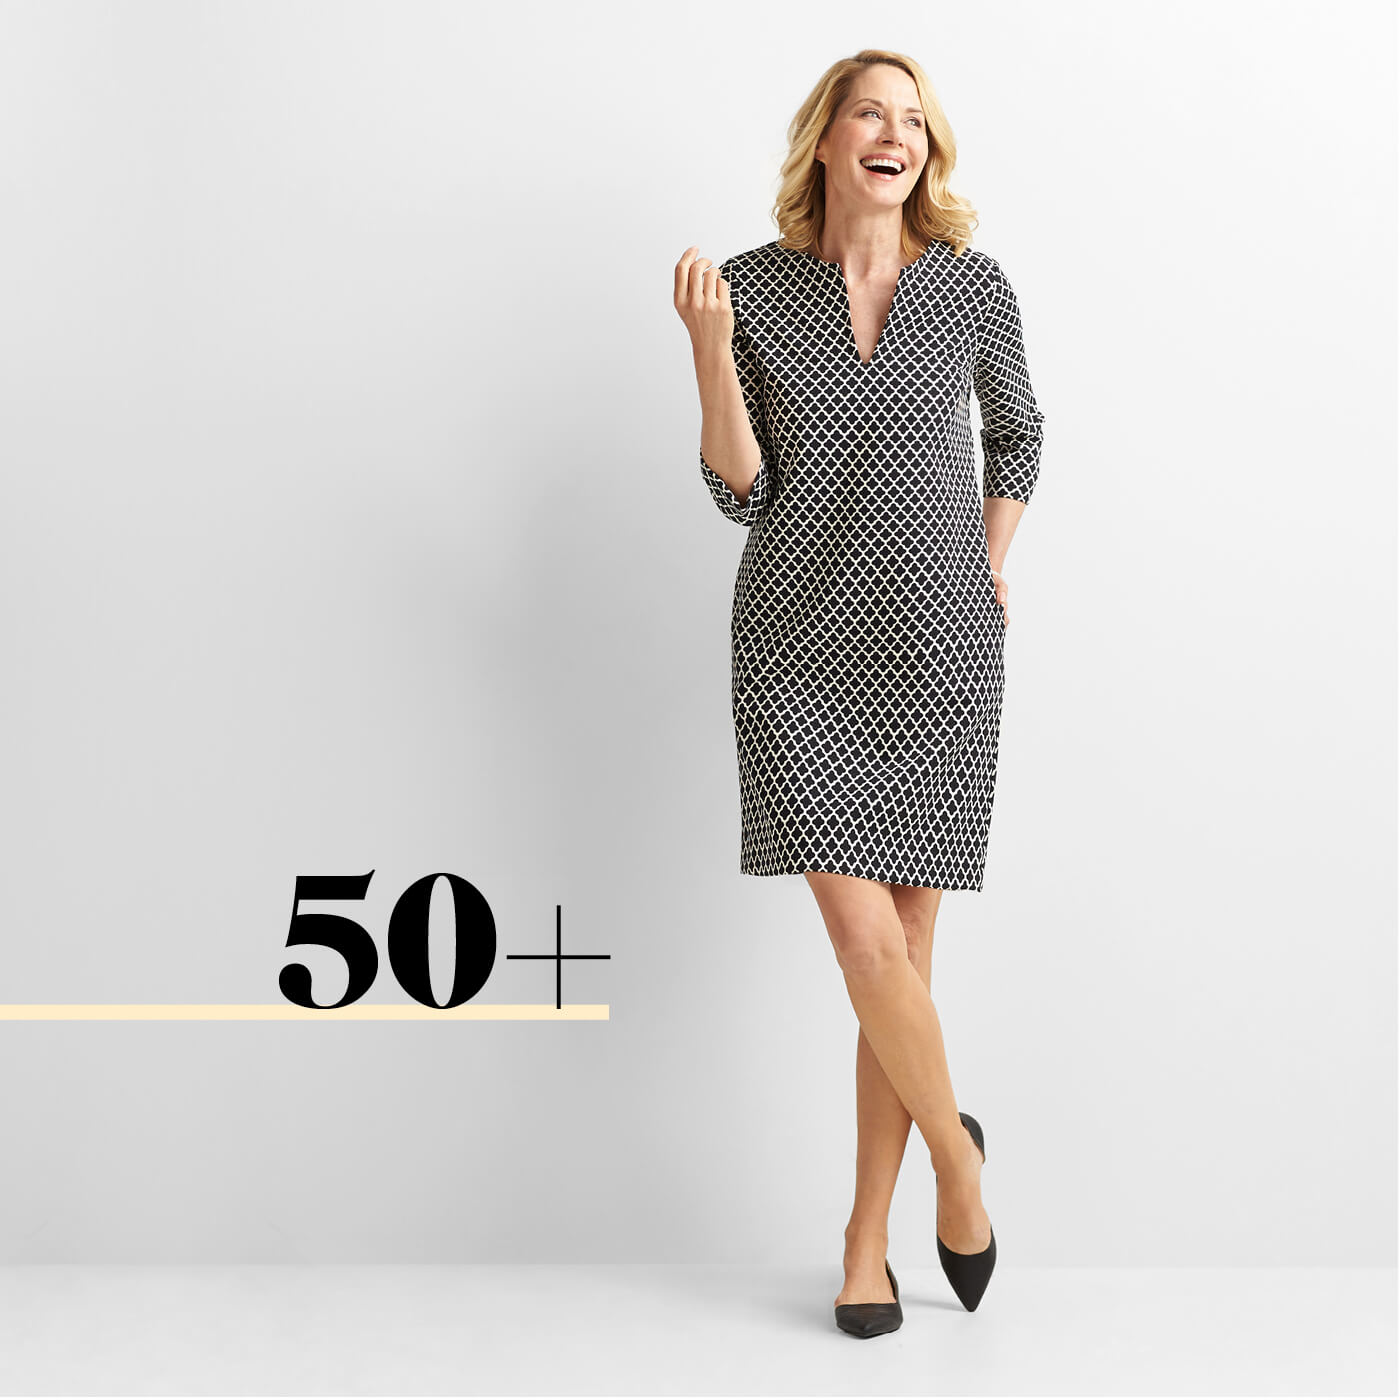 Dress style for age 50